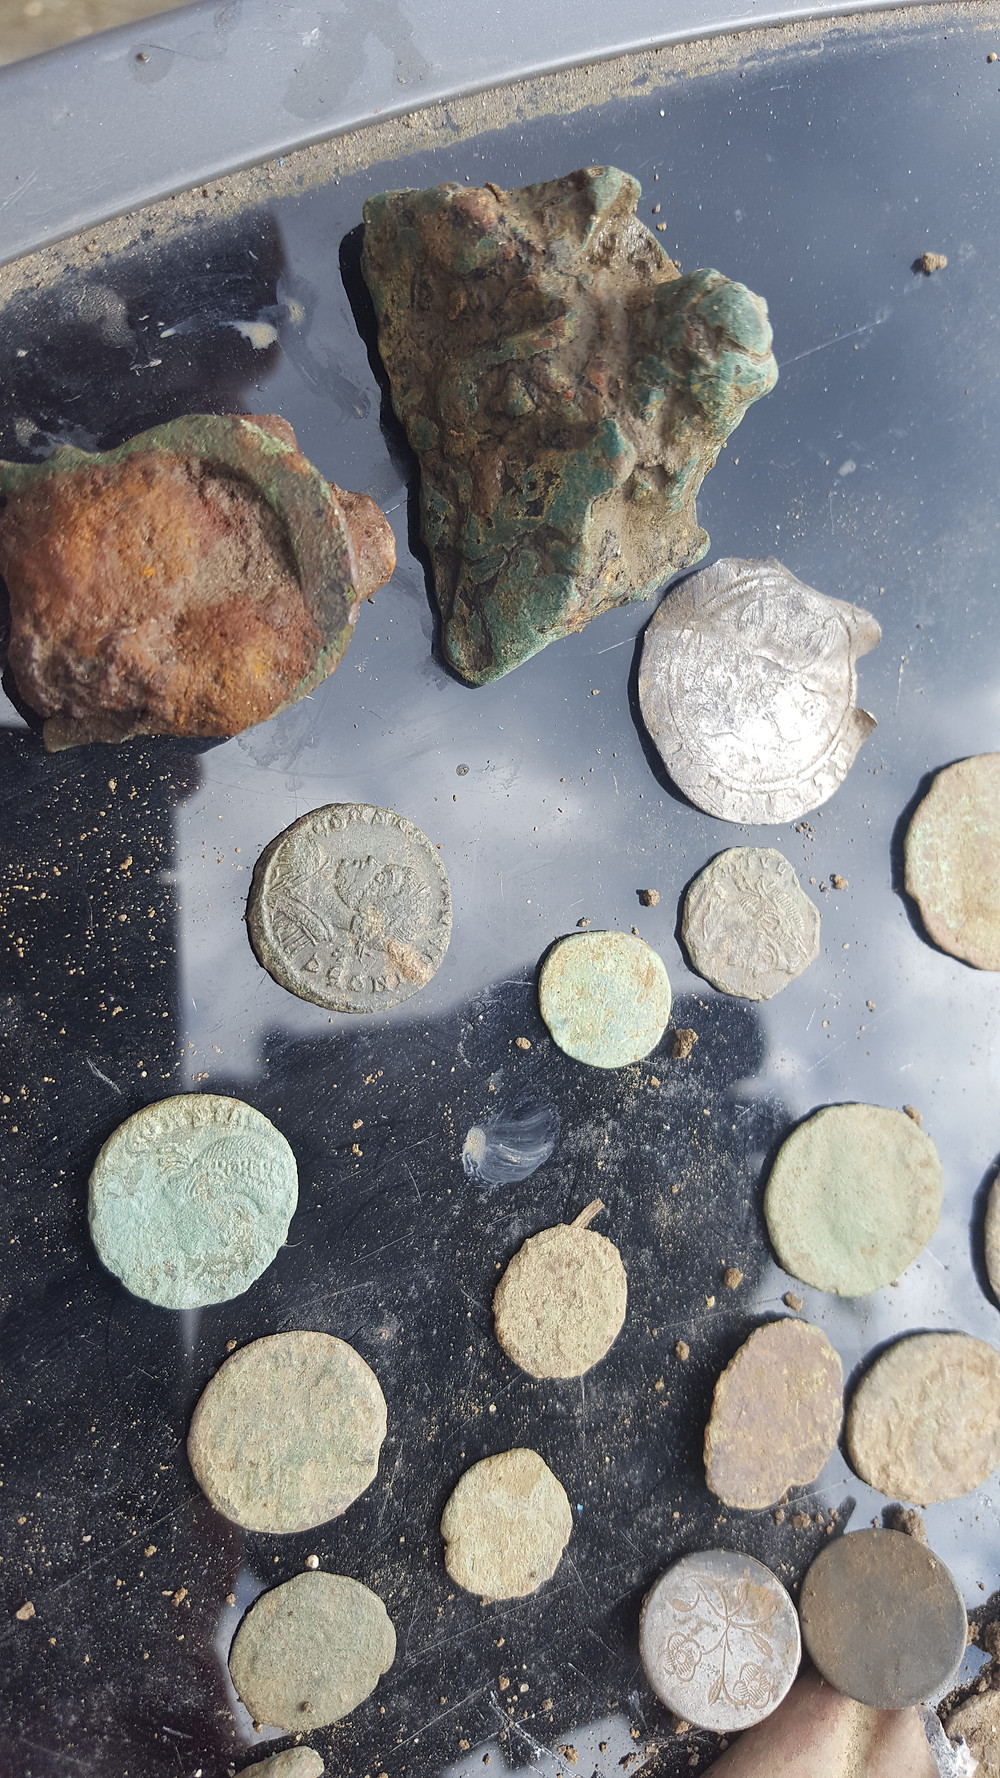 Some of my finds